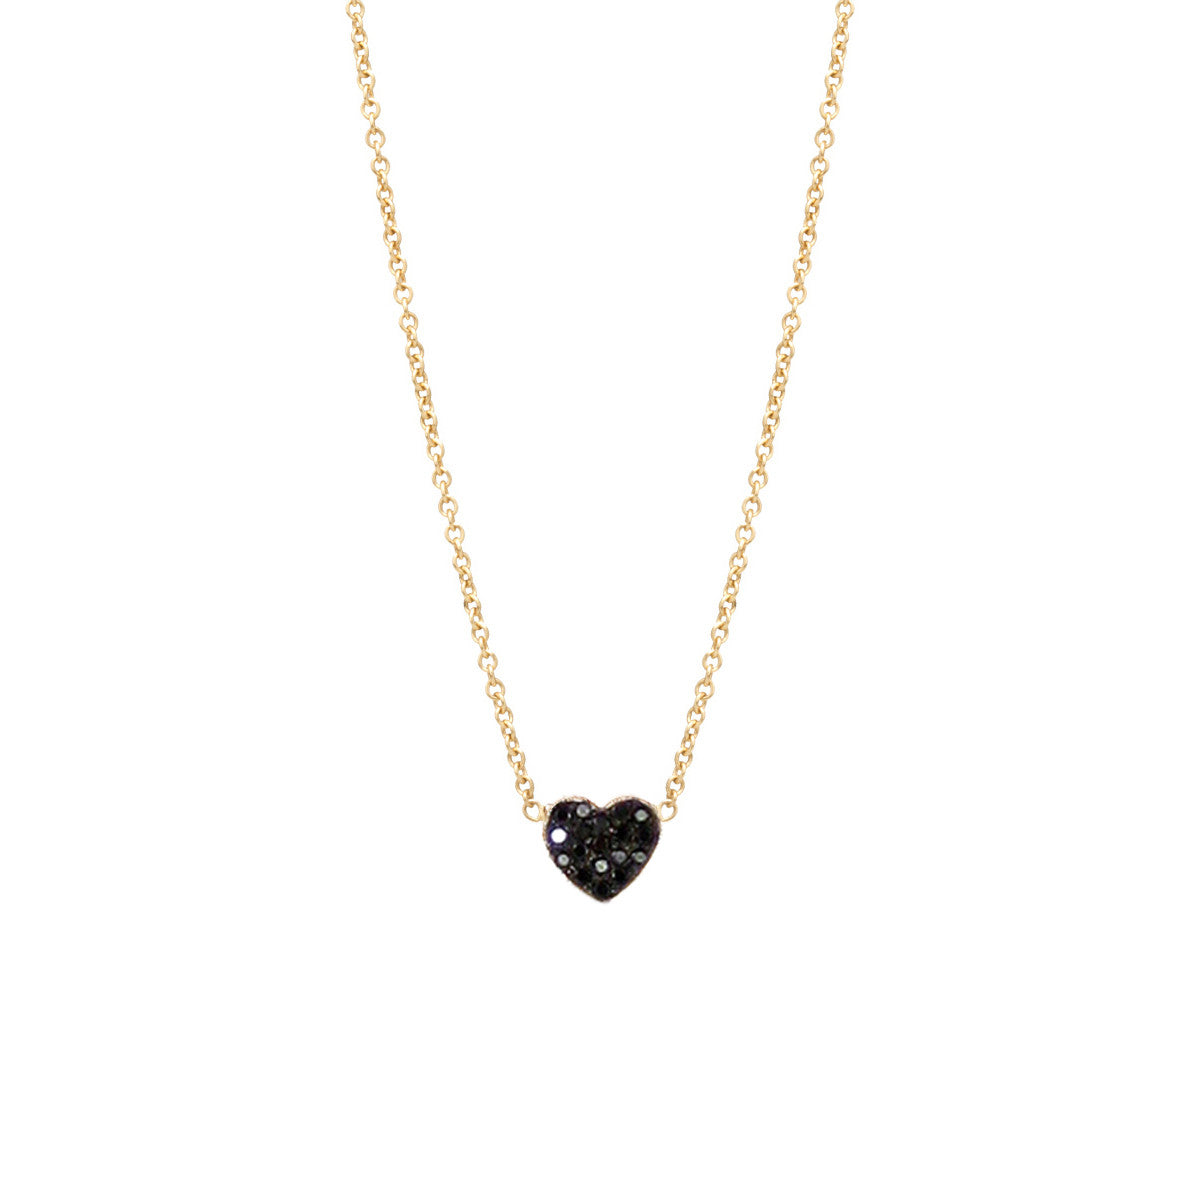 Zoë Chicco 14kt Yellow Gold Black Heart Diamond Pave Necklace